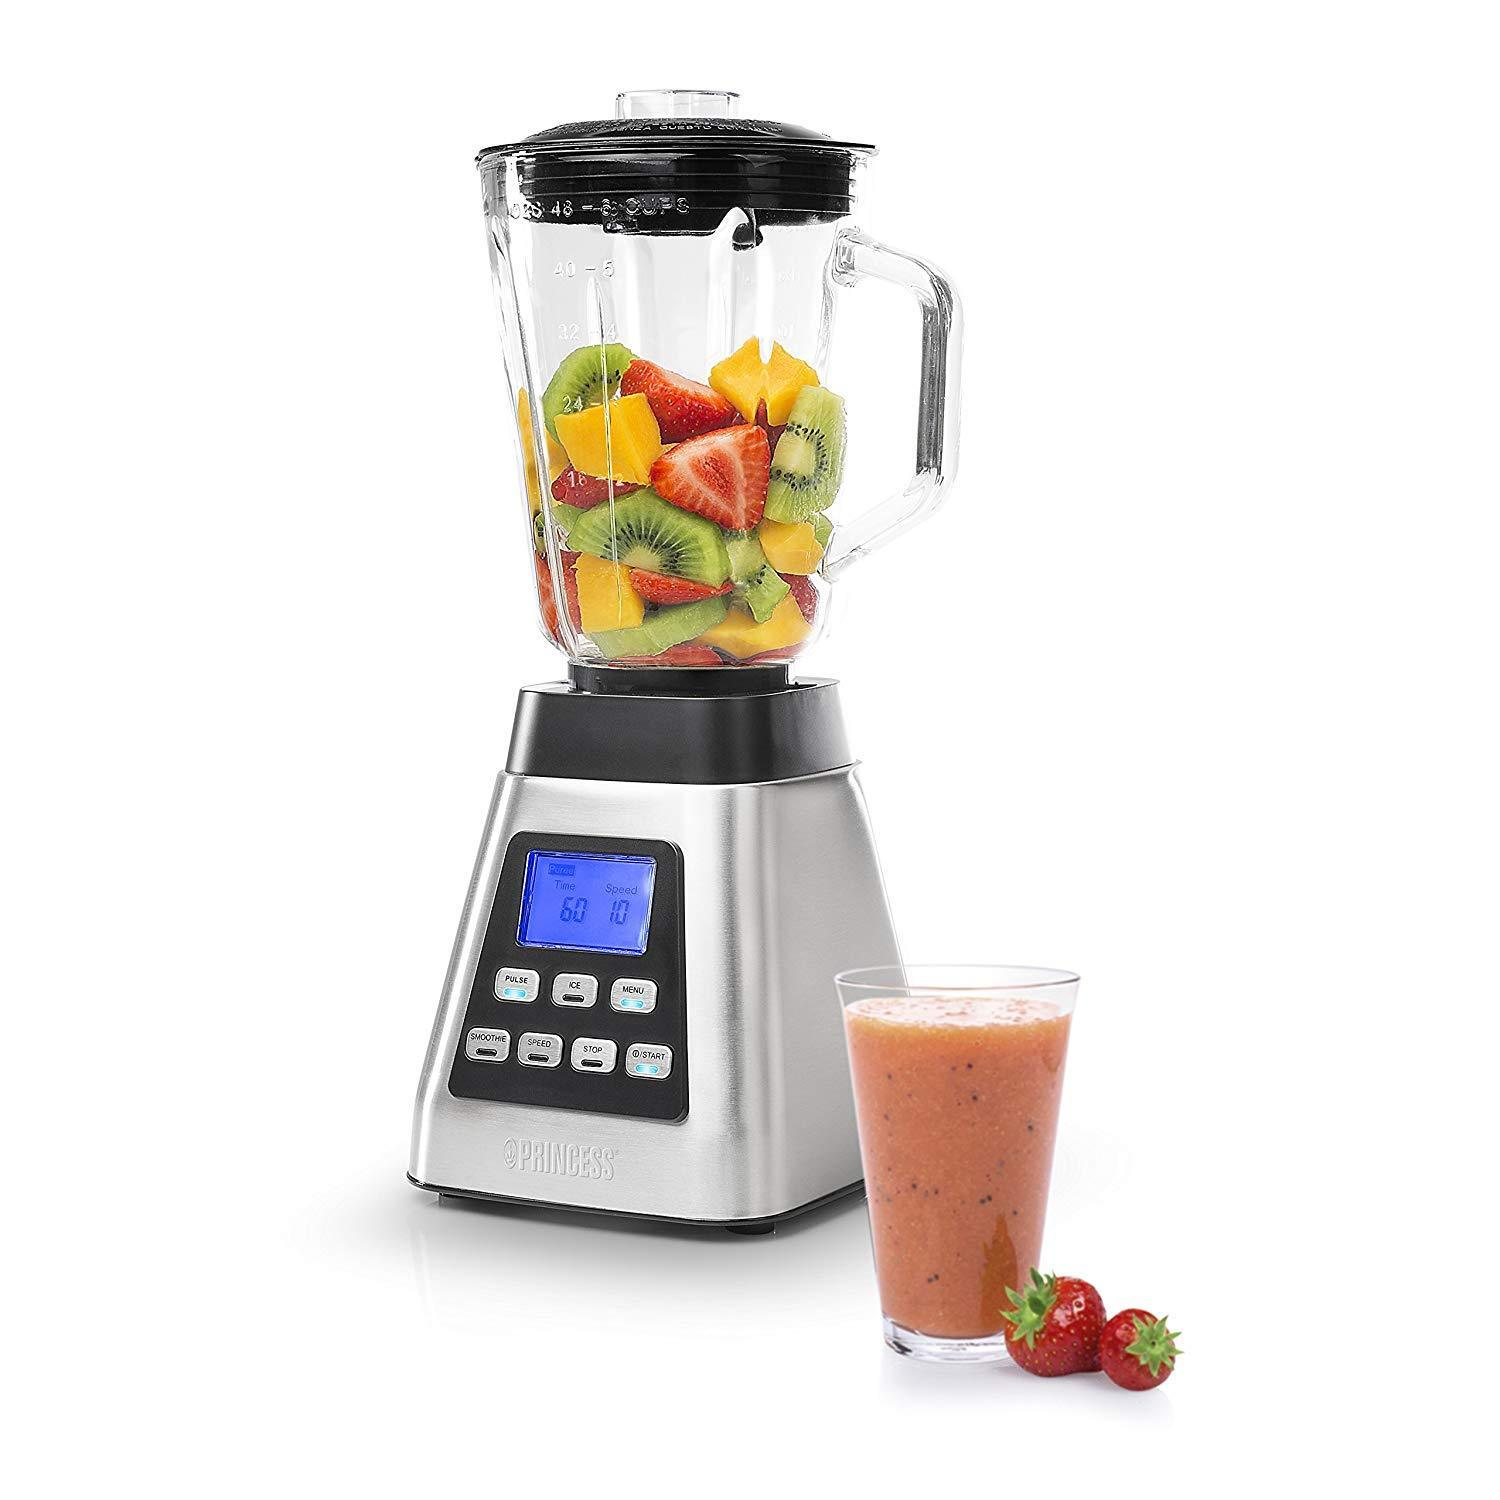 Princess 212071 Power Deluxe Blender Powerful 1000 W Screen LCD 10 Speed